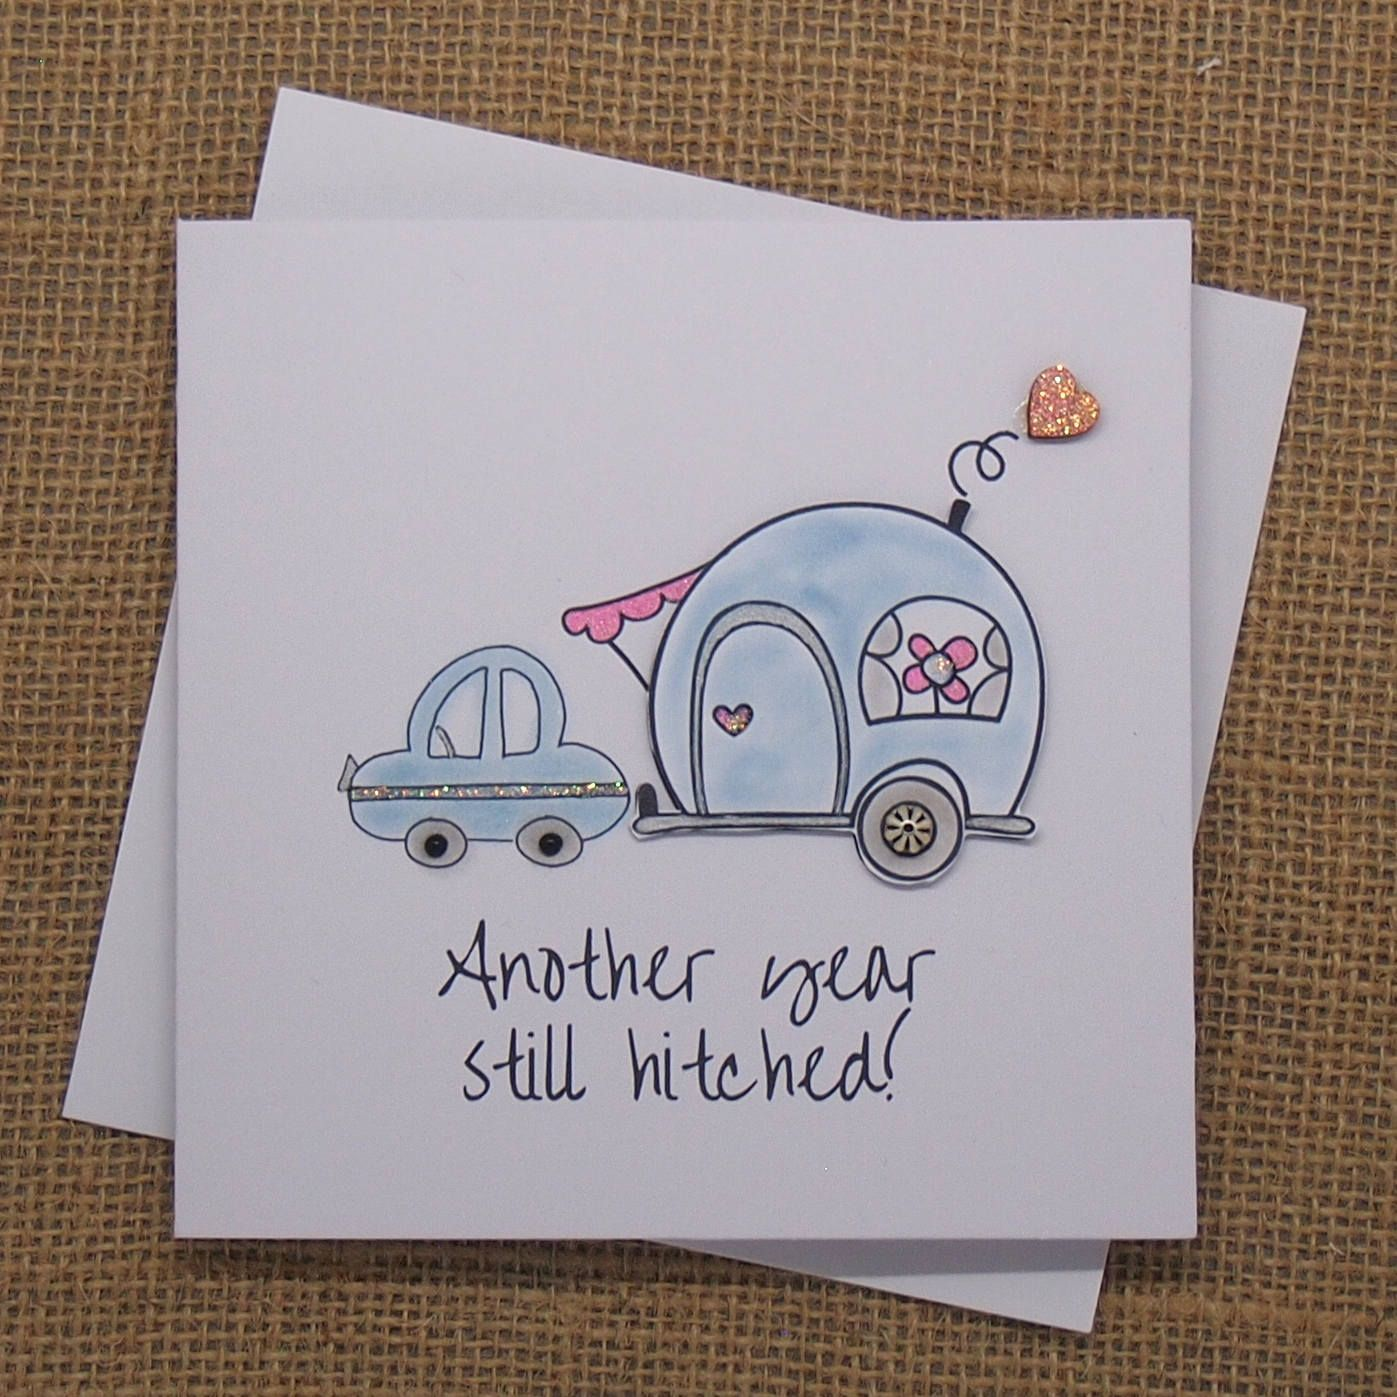 Excited to share that card is back in stock at my etsy